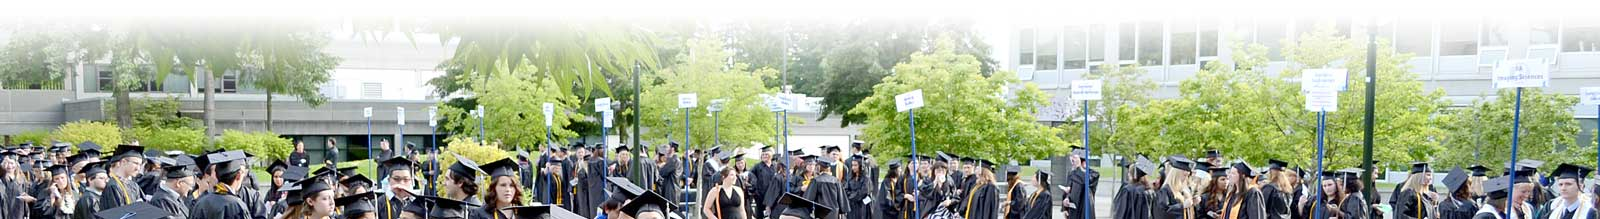 Bellevue College's graduating class waits outdoors